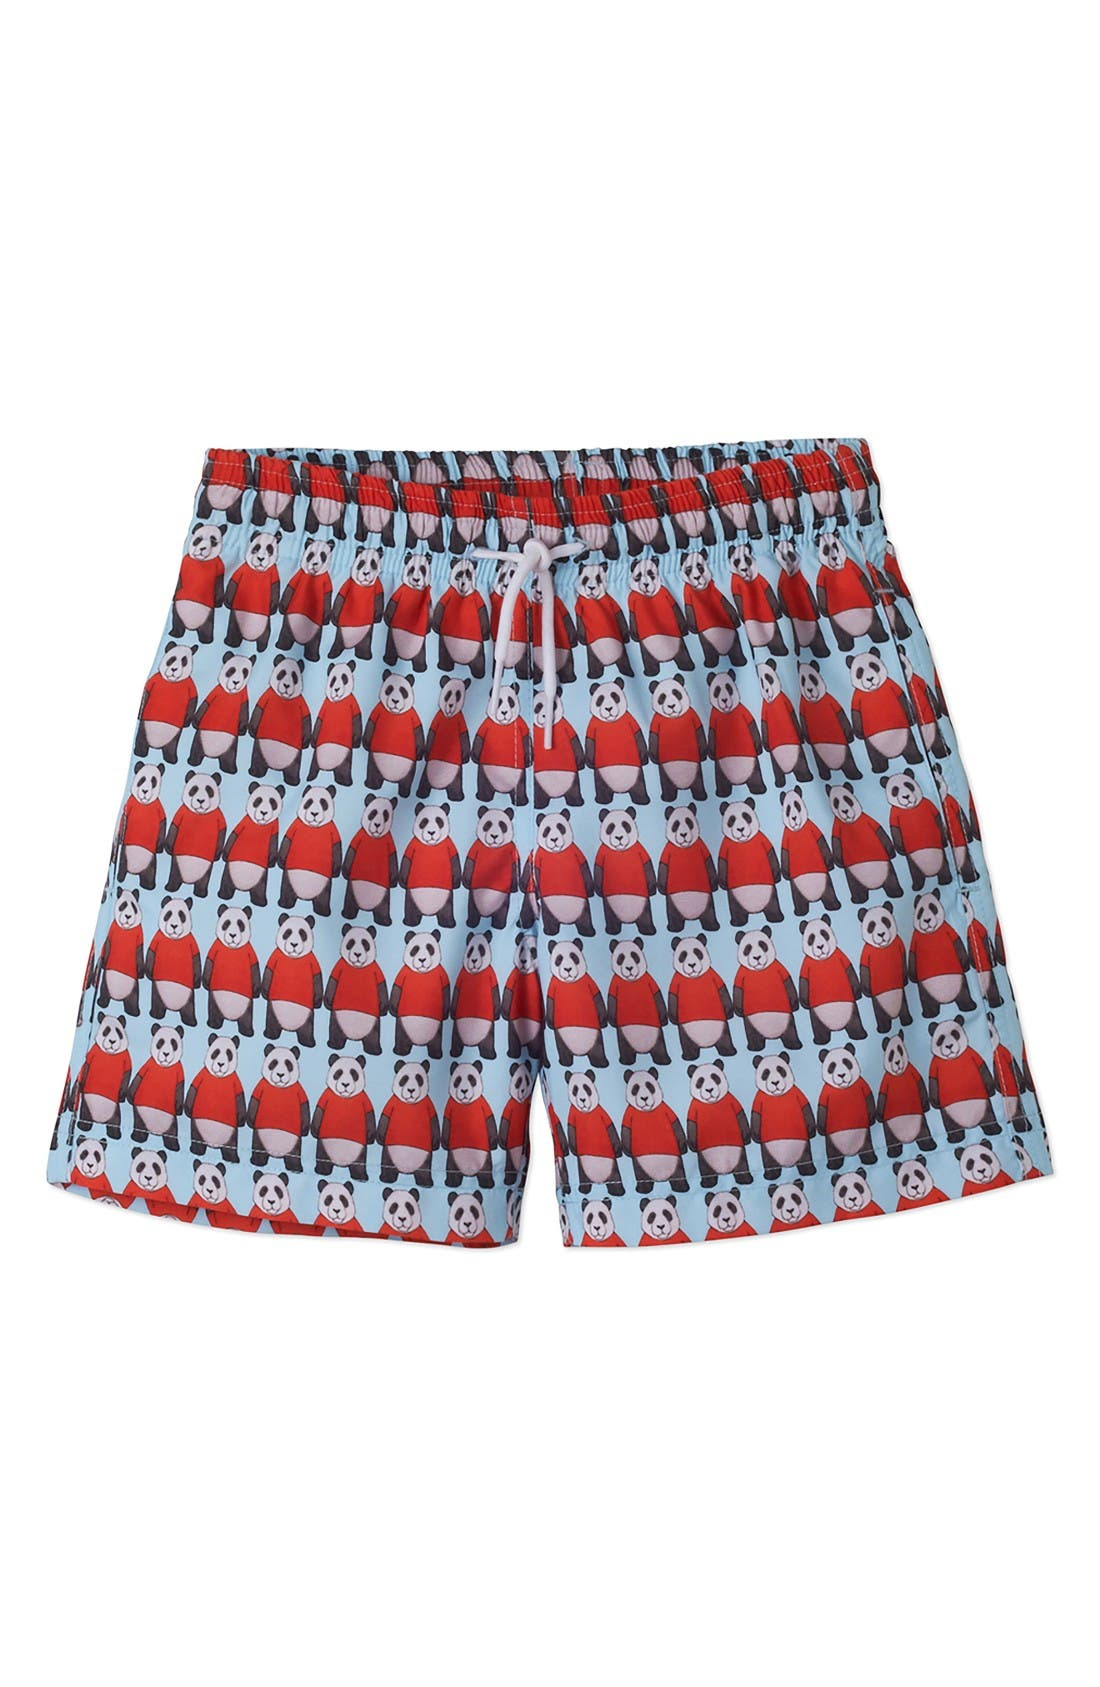 Alternate Image 1 Selected - Stella Cove Panda Swim Trunks (Toddler Boys & Little Boys)